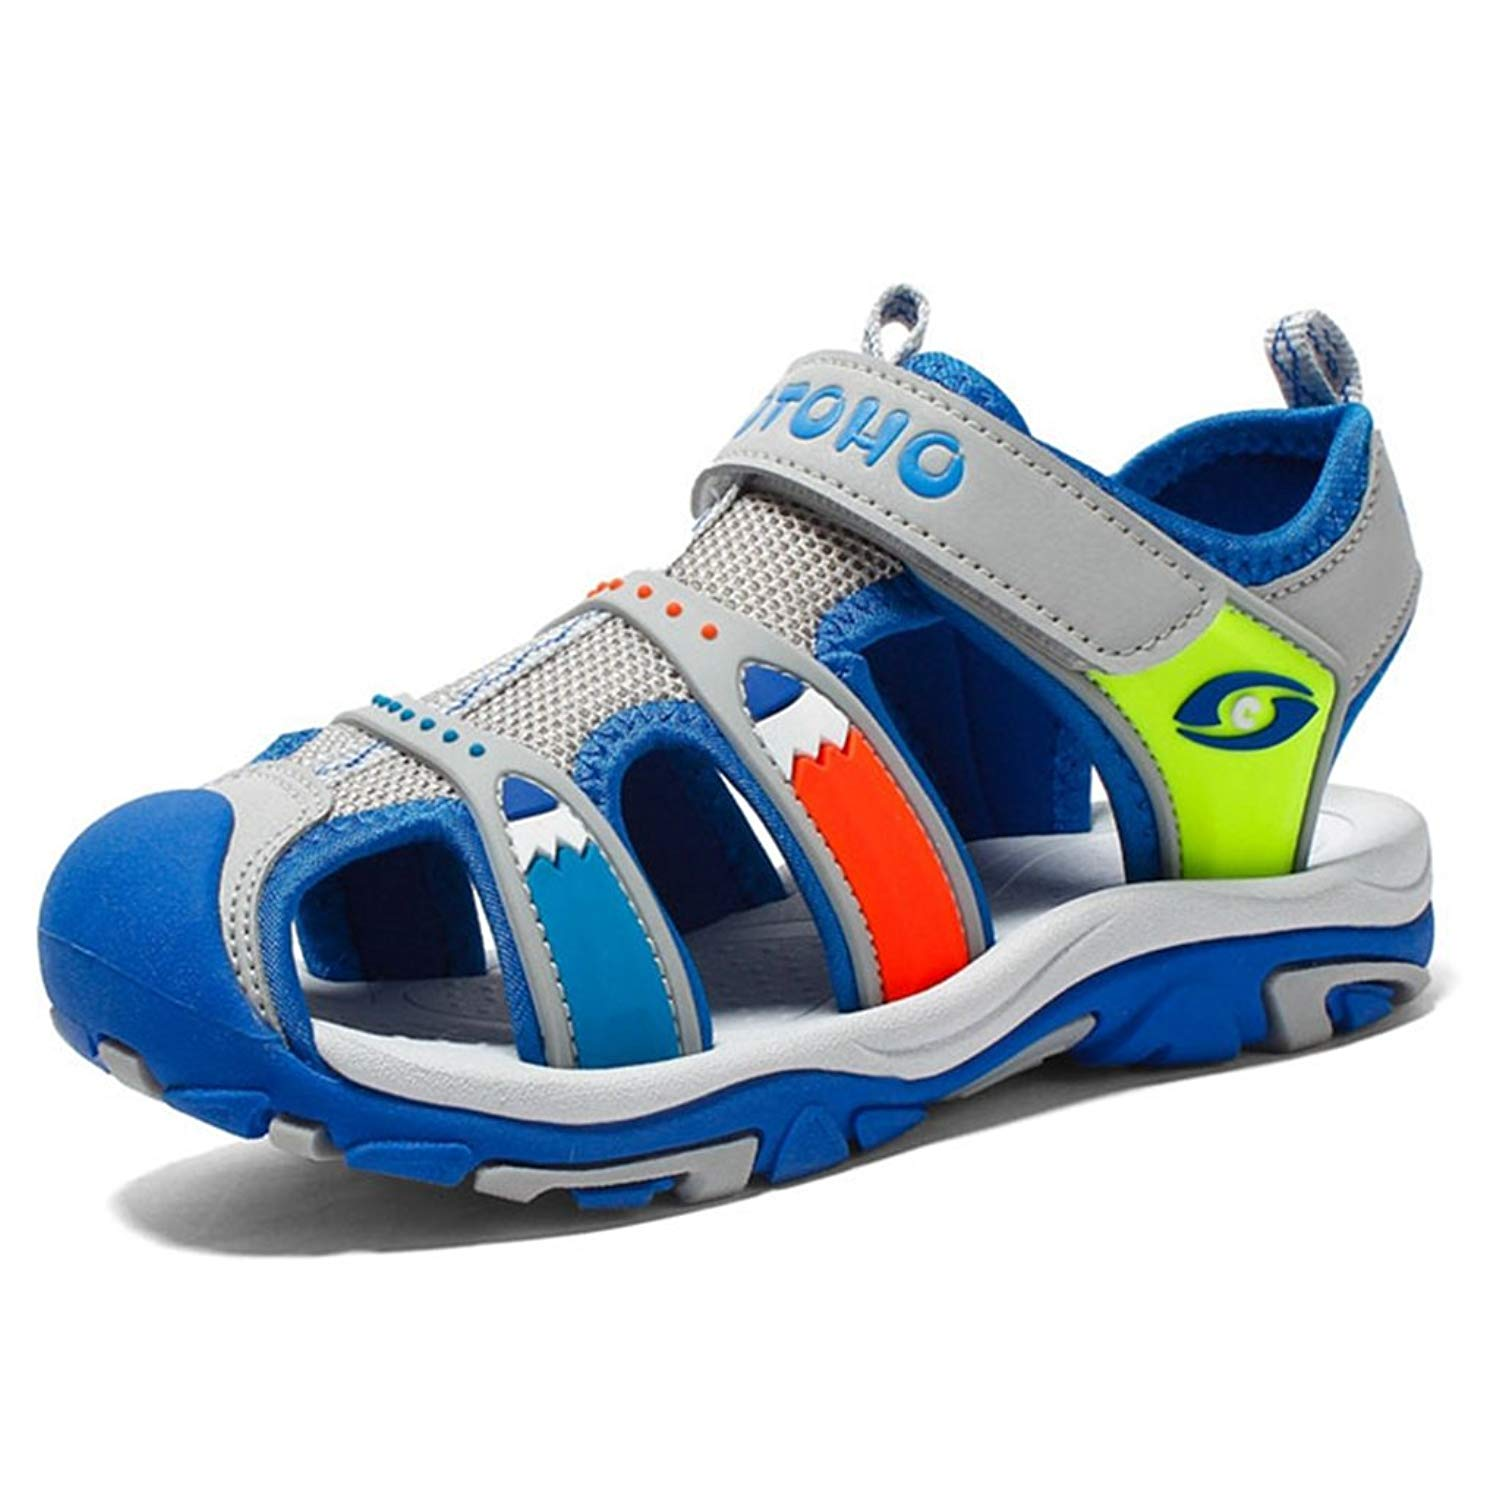 fedec8369f0888 Get Quotations · Boys  and Girls  Summer Outdoor Beach Kid Fisherman Sports  Closed-Toe Athletic Sandals